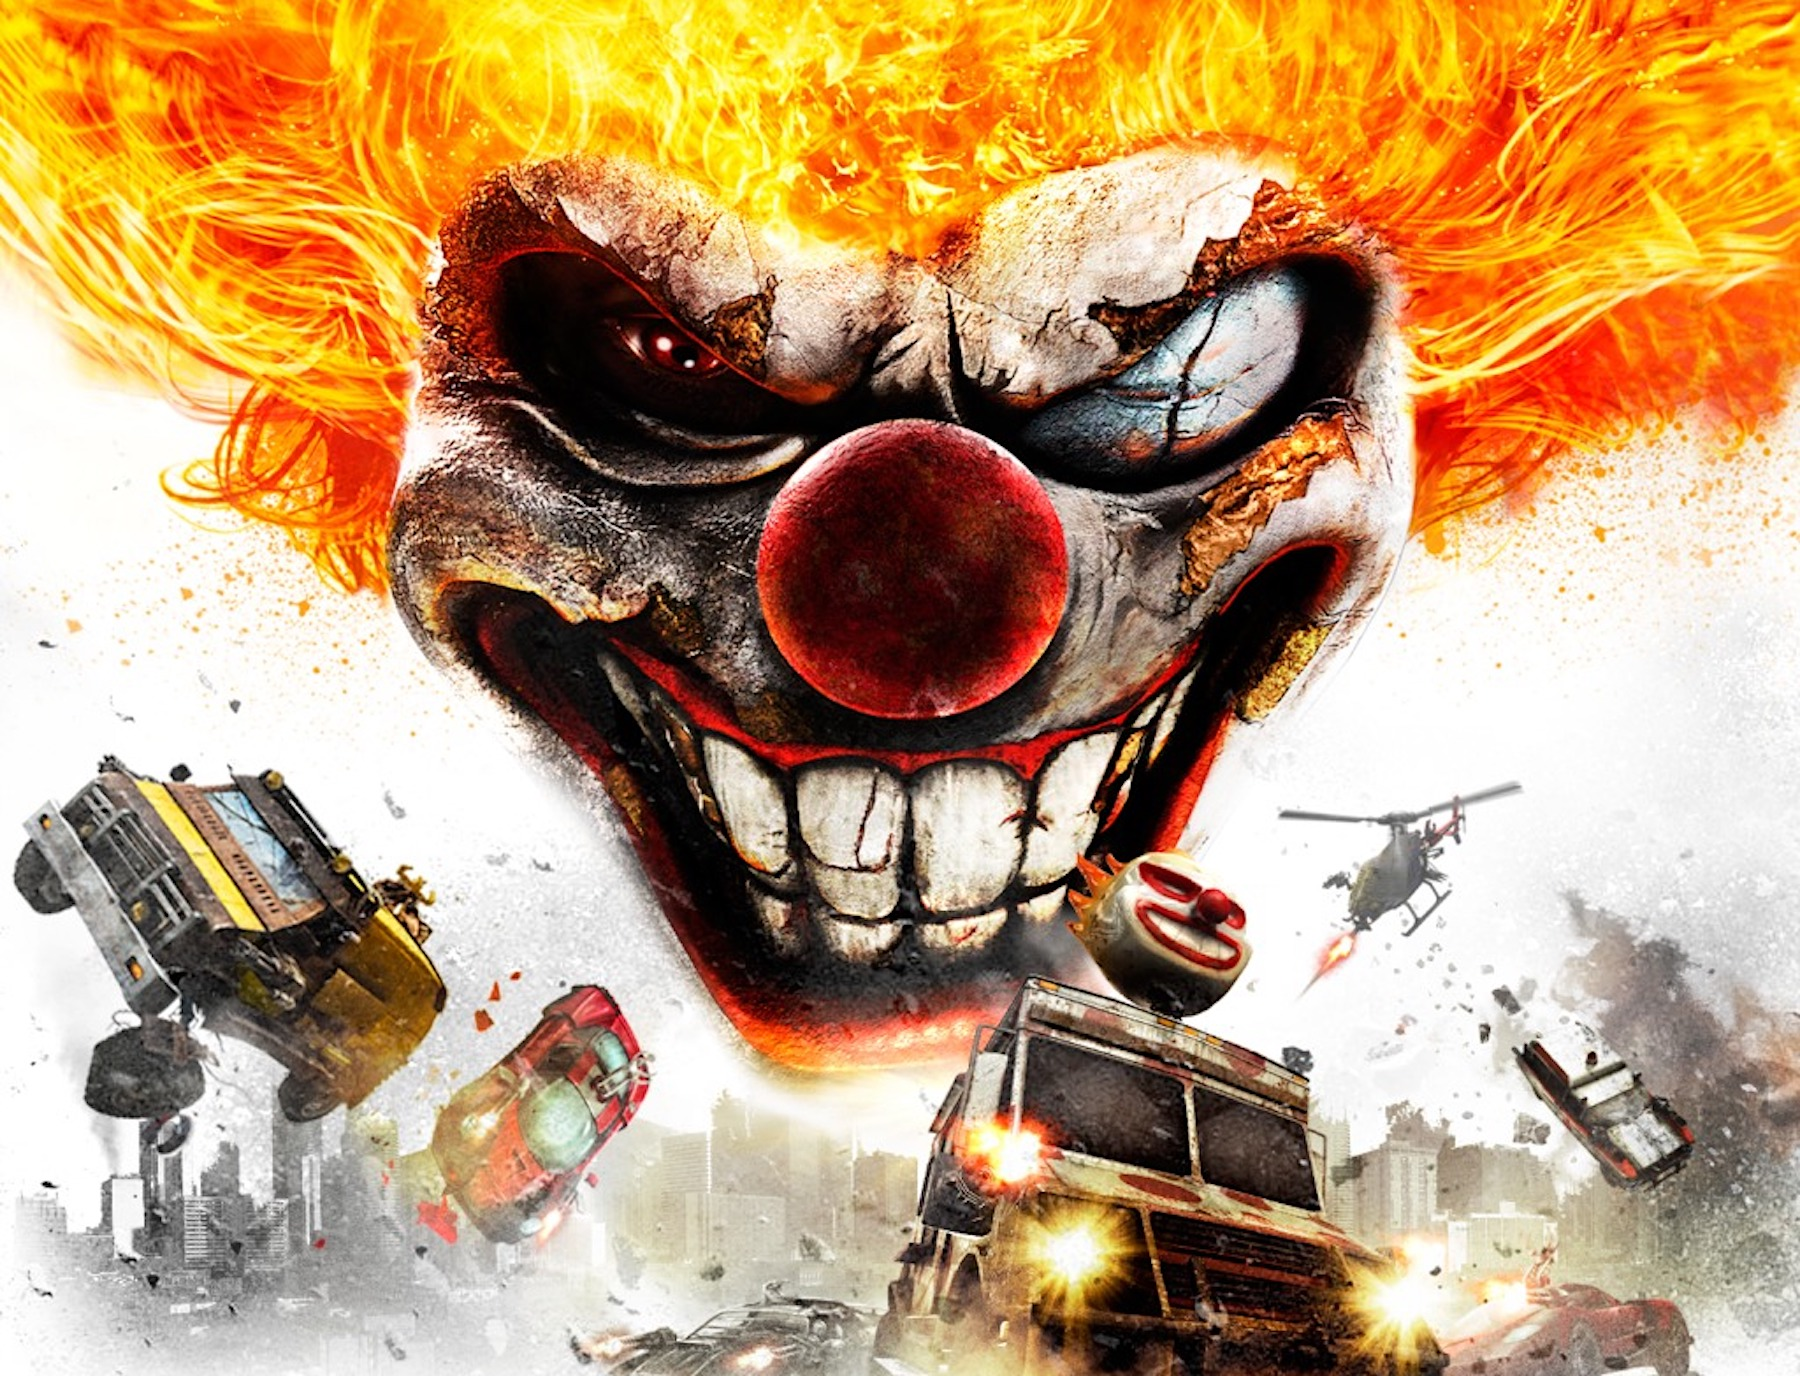 Deadpool writers land Twisted Metal TV series, obviously